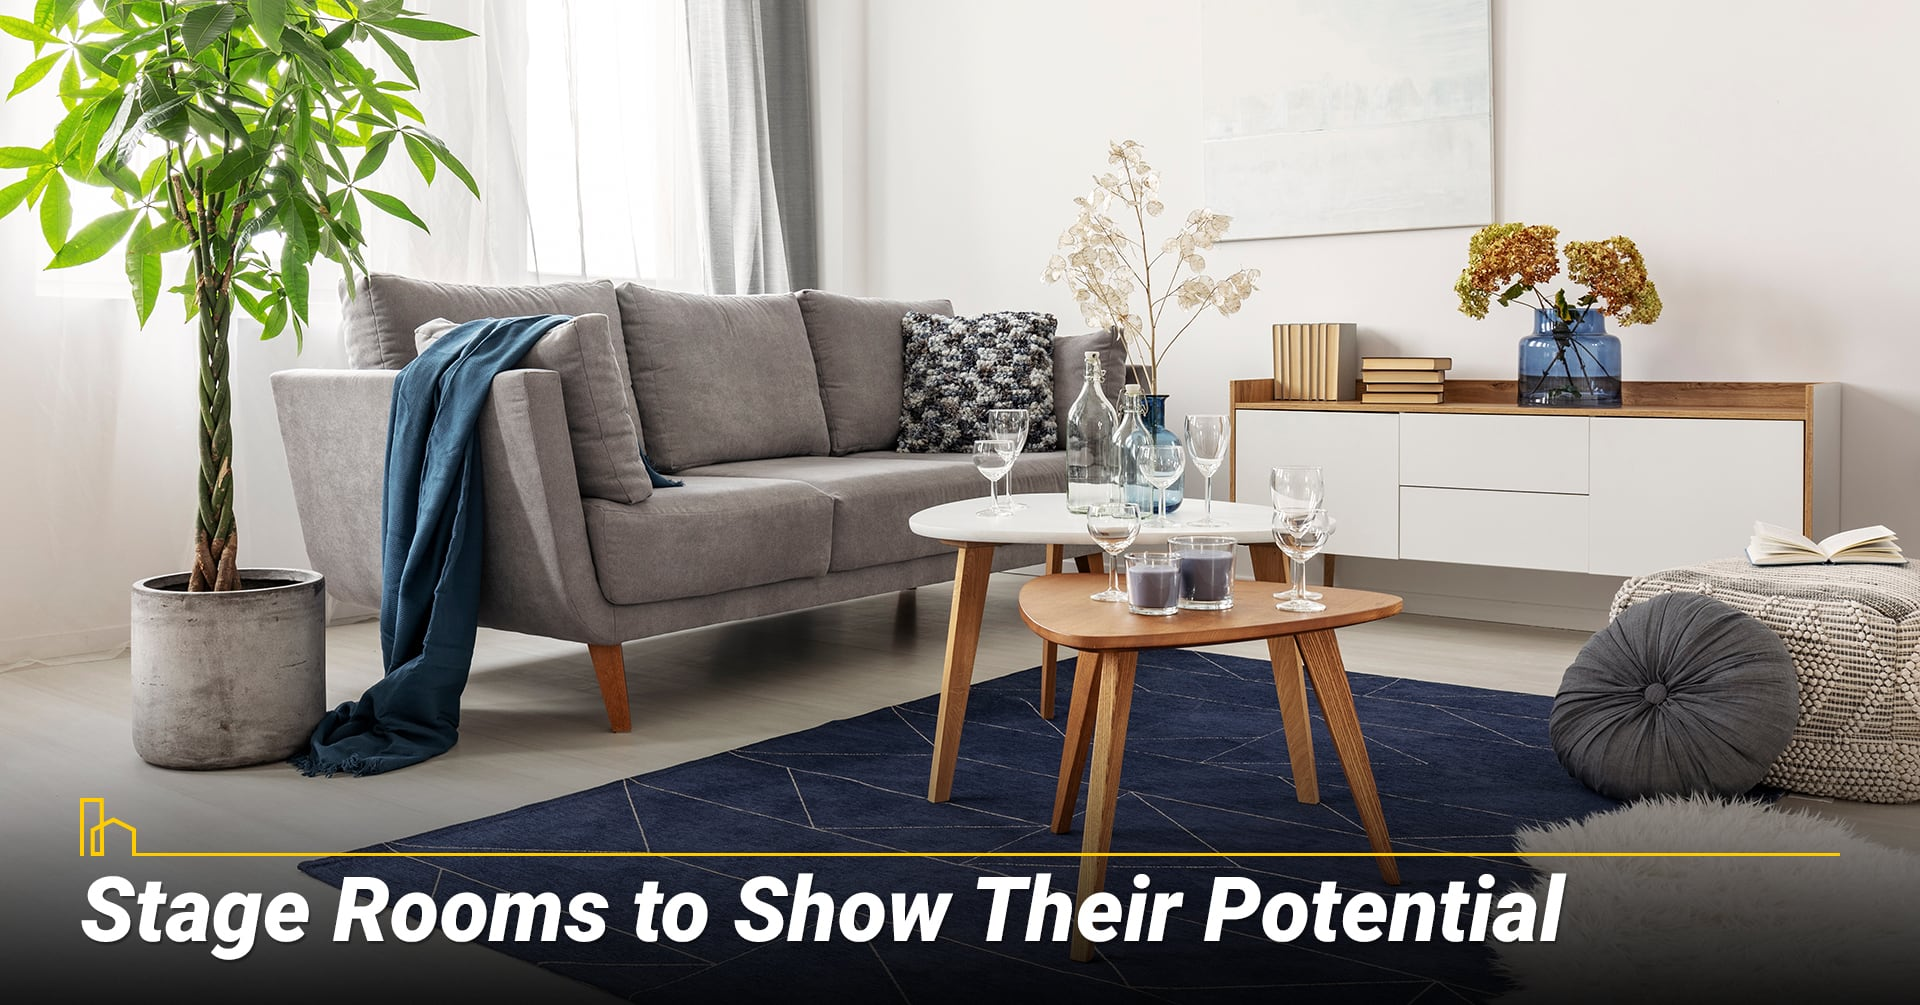 Stage Rooms to Show Their Potential, make your space more welcoming